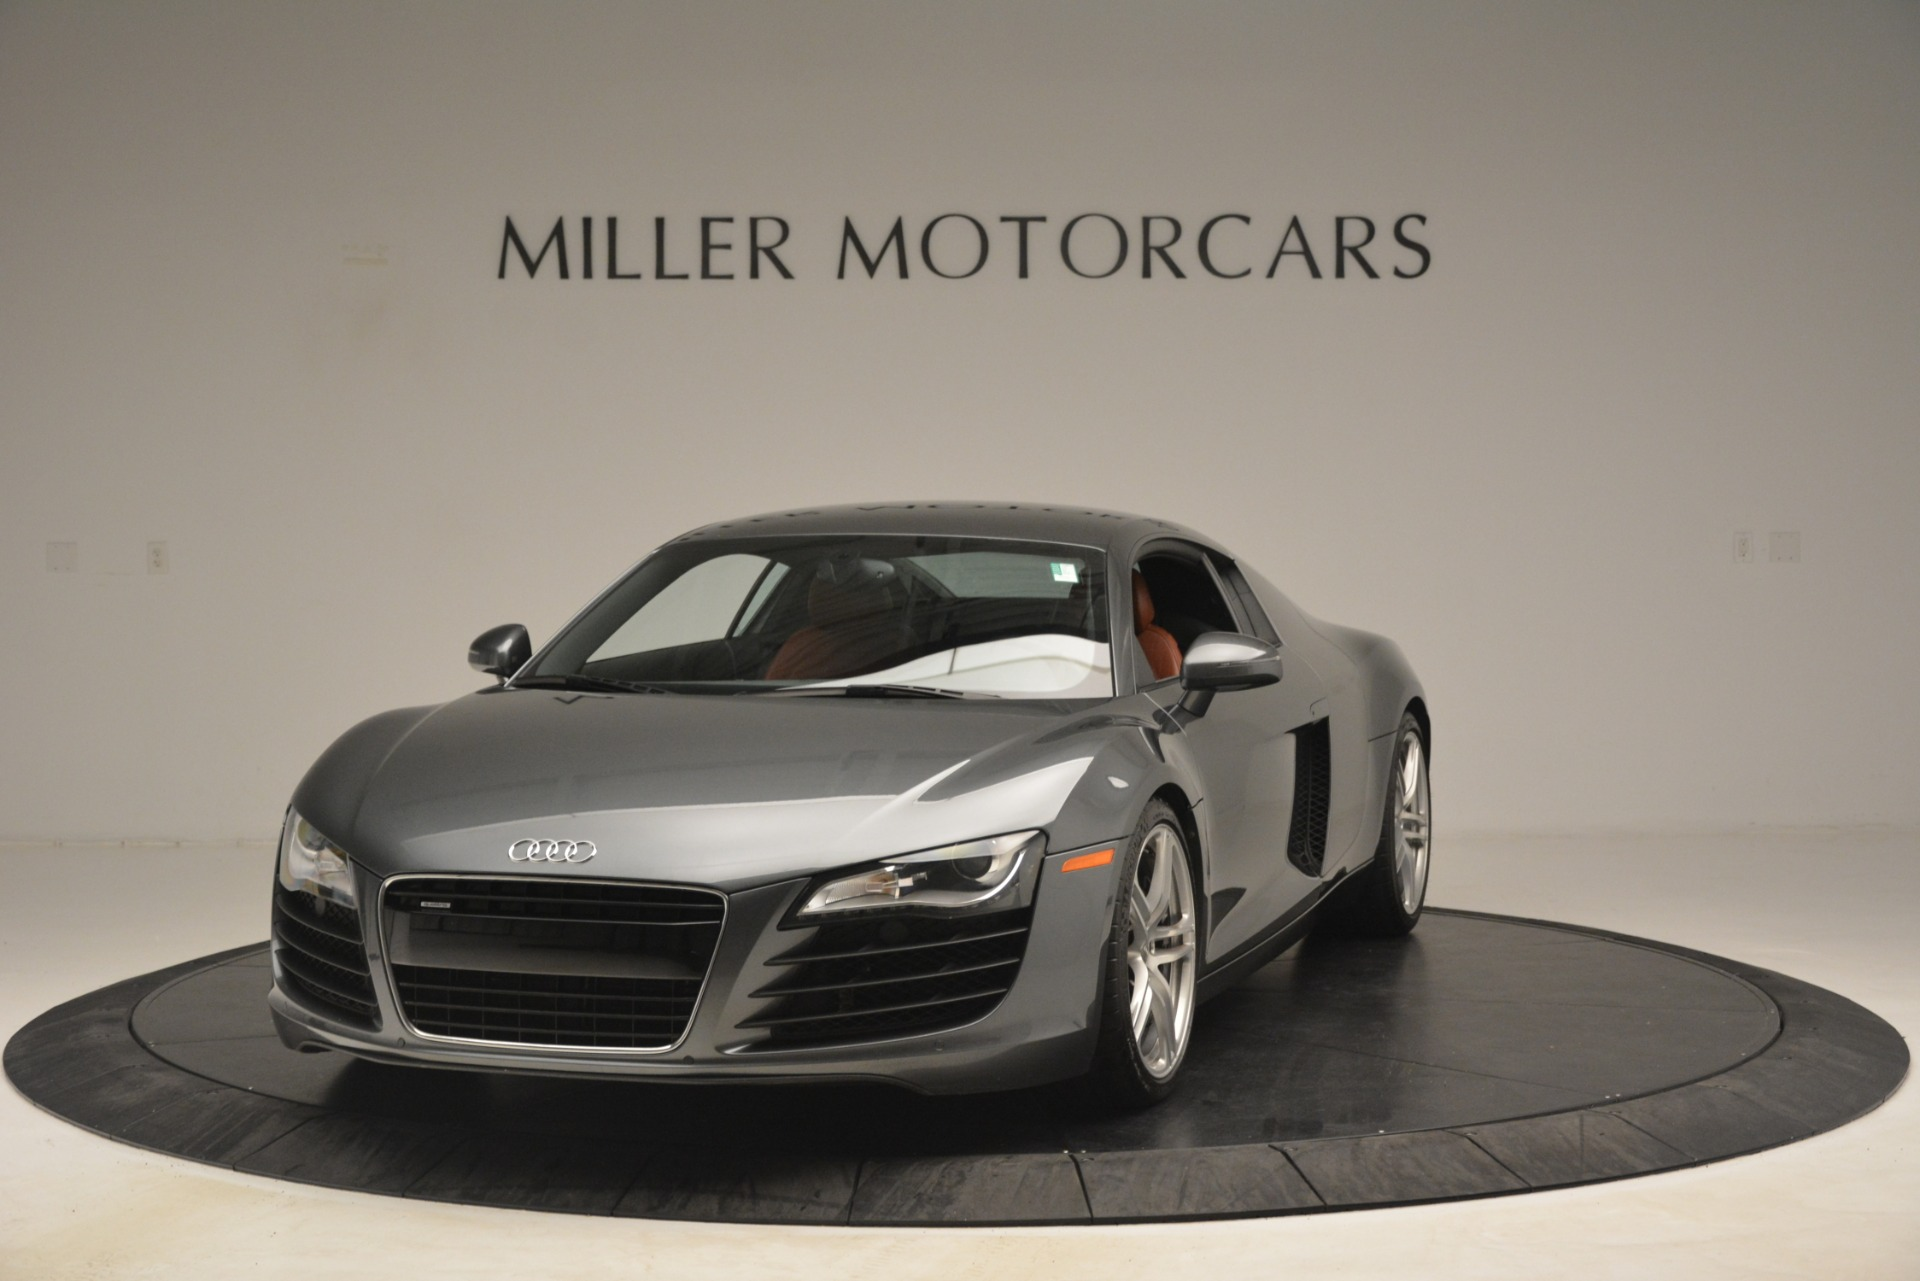 Used 2009 Audi R8 quattro for sale Sold at Alfa Romeo of Greenwich in Greenwich CT 06830 1